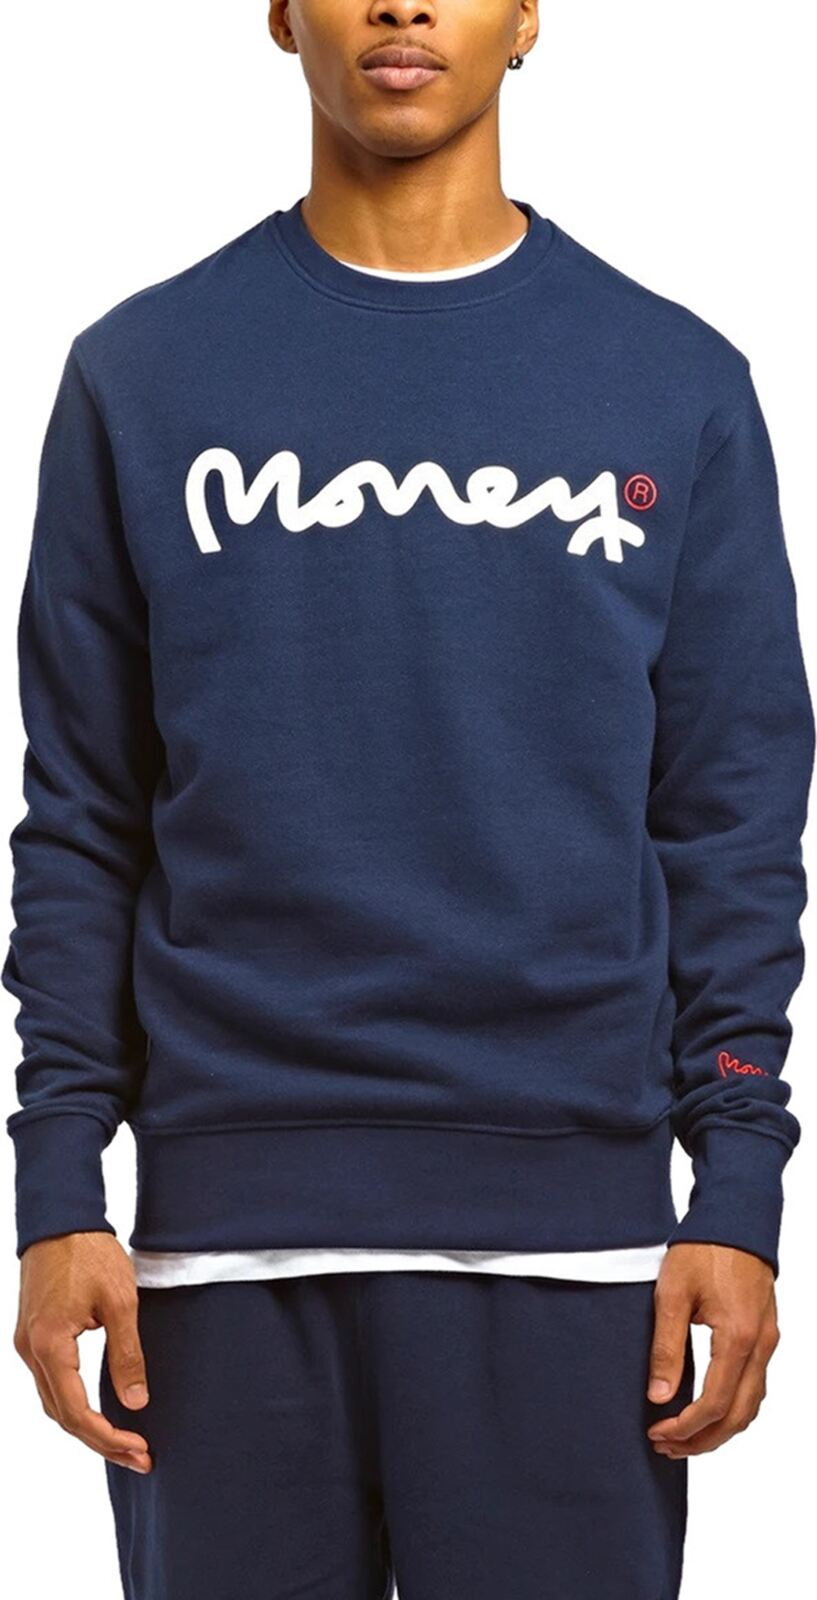 Money Chop Sig Ape Sweatshirt Navy